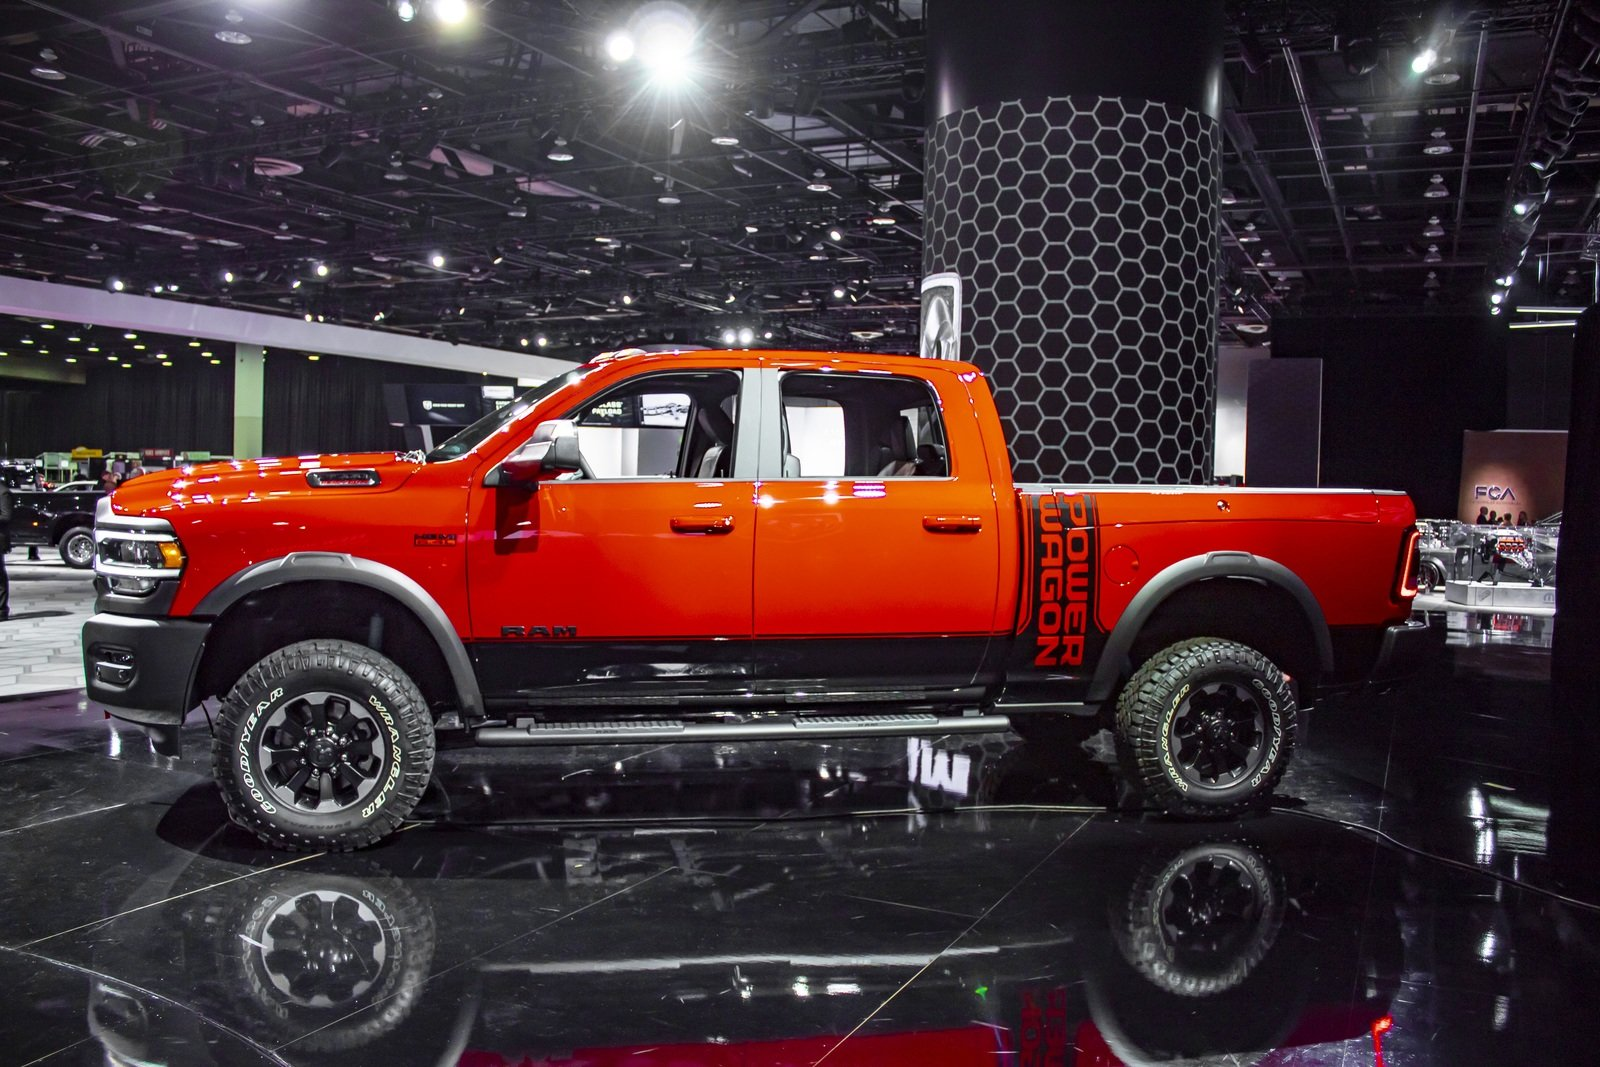 3 Things To Know About The 2019 Ram 2500 Power Wagon | SUV News and Analysis